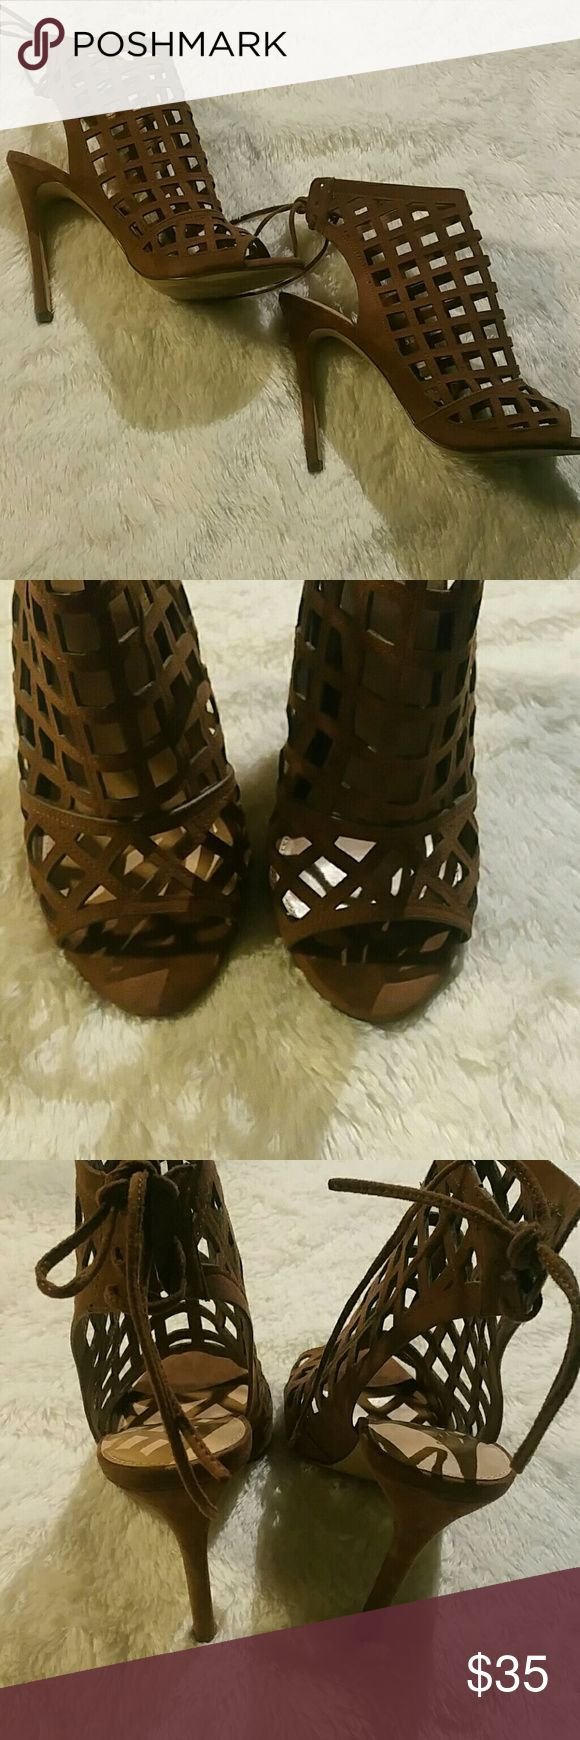 """Ultra Chic Caged heels by Express Faux suede heels by Express. Only worn once. Excellent pre owned condition. Lace up back, gorgeous caged look. 5"""" heel no signs of wear, heel tips are intact. No box.  Accepting reasonable offers. Express Shoes Heels"""